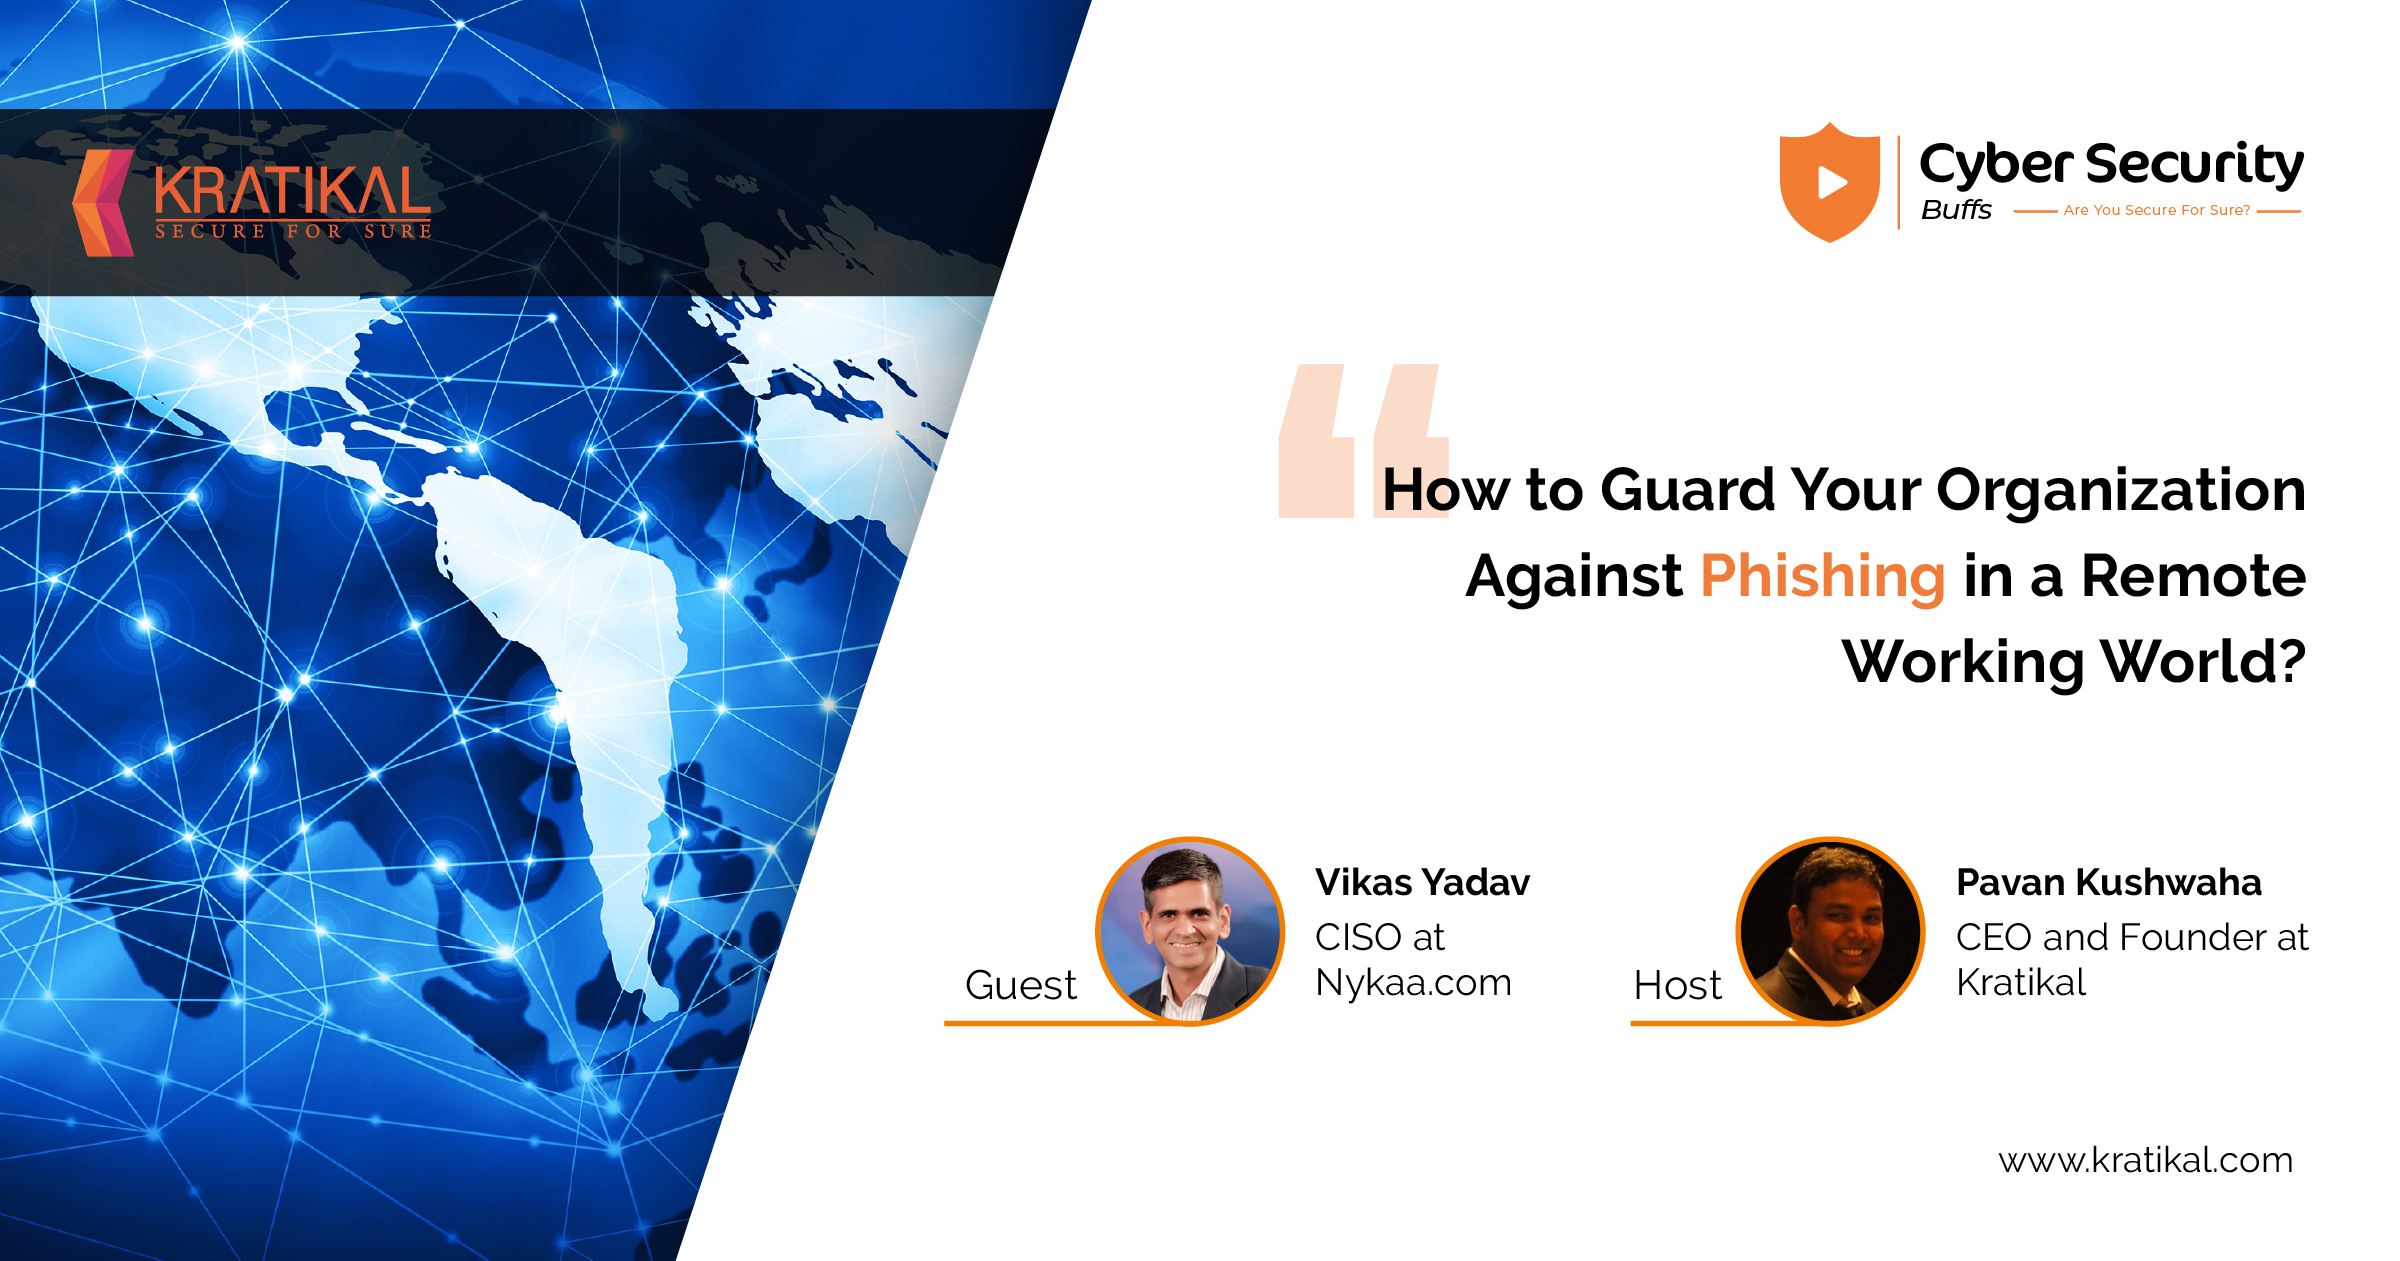 Webinar by the Cyber Security Buffs on International Computer Security Day